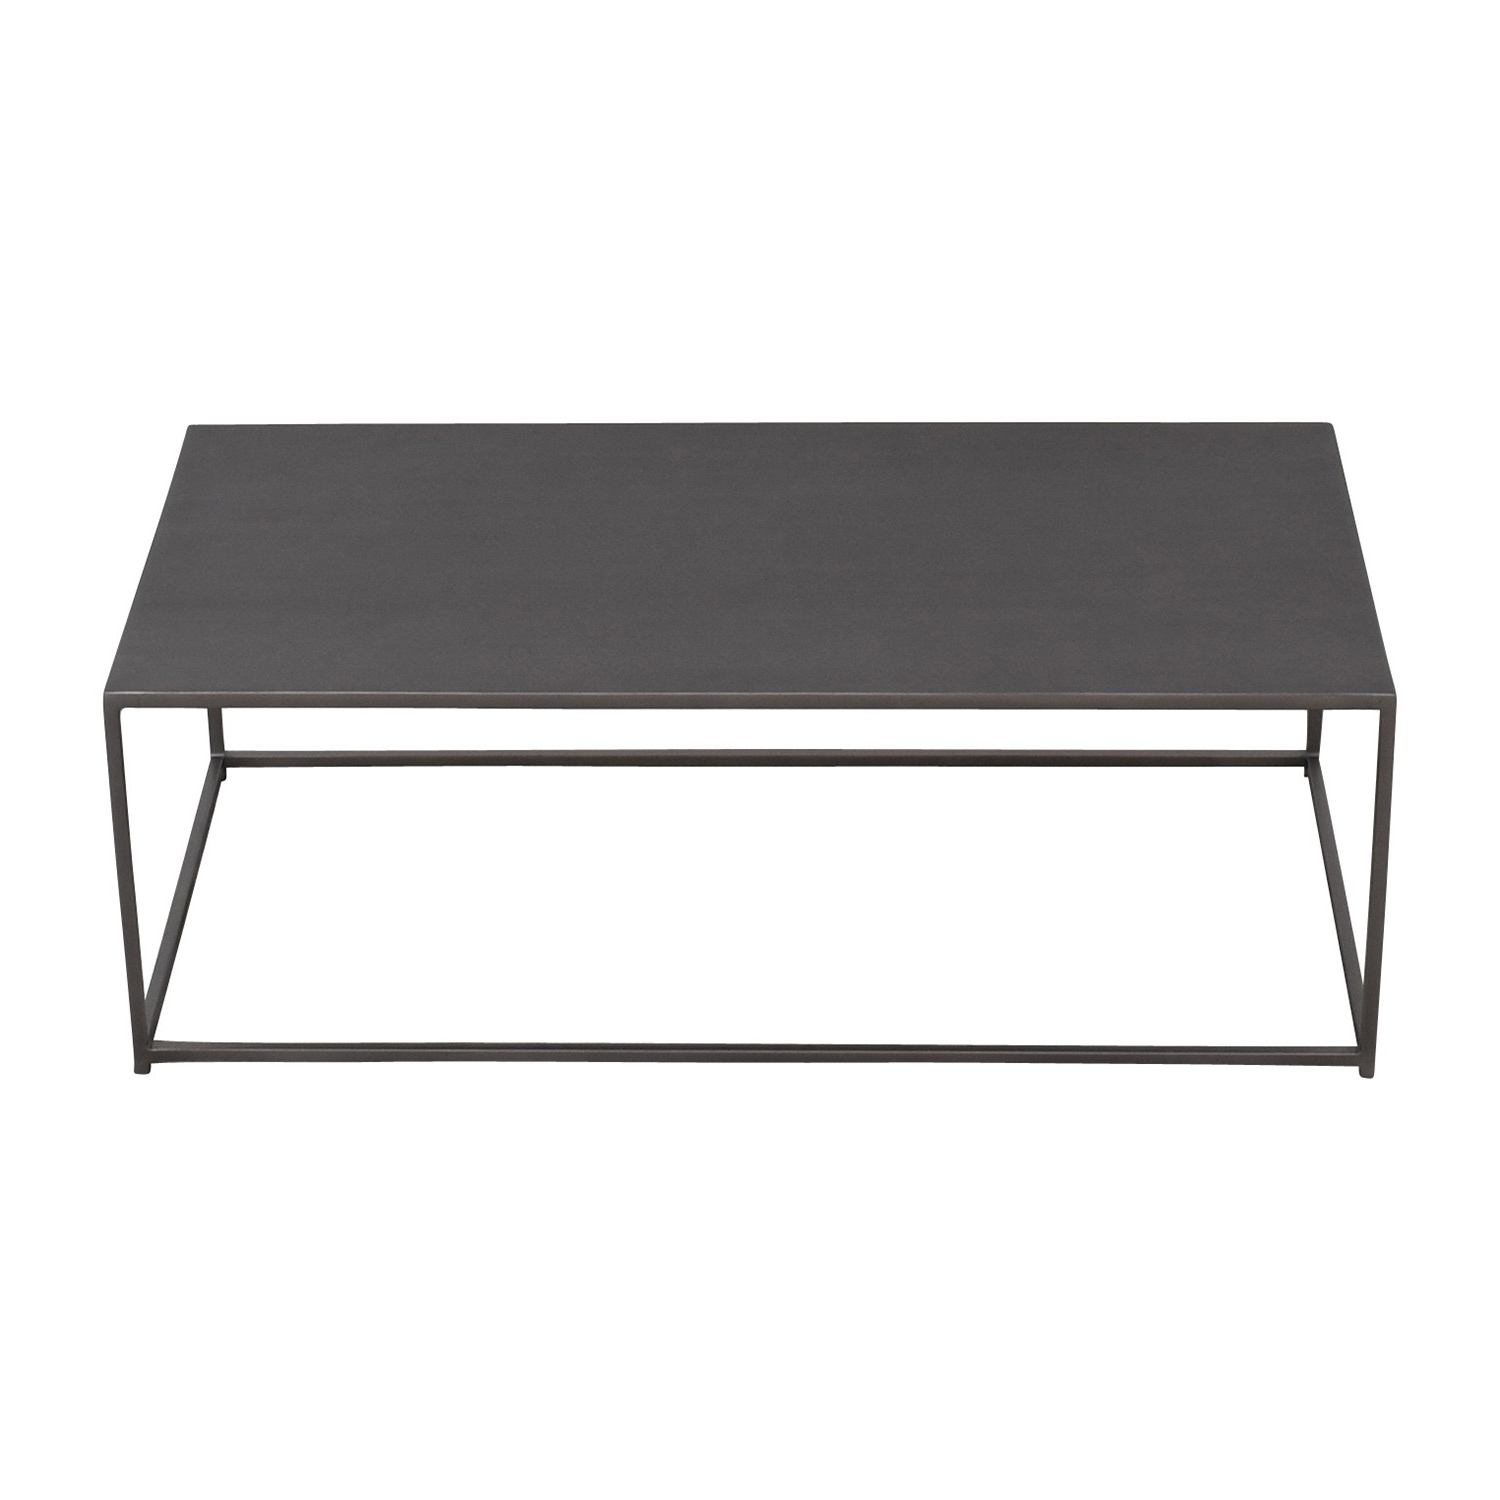 Cb2 Coffee Tables – Tadalafilcanada Within Most Recently Released Mill Coffee Tables (View 5 of 20)